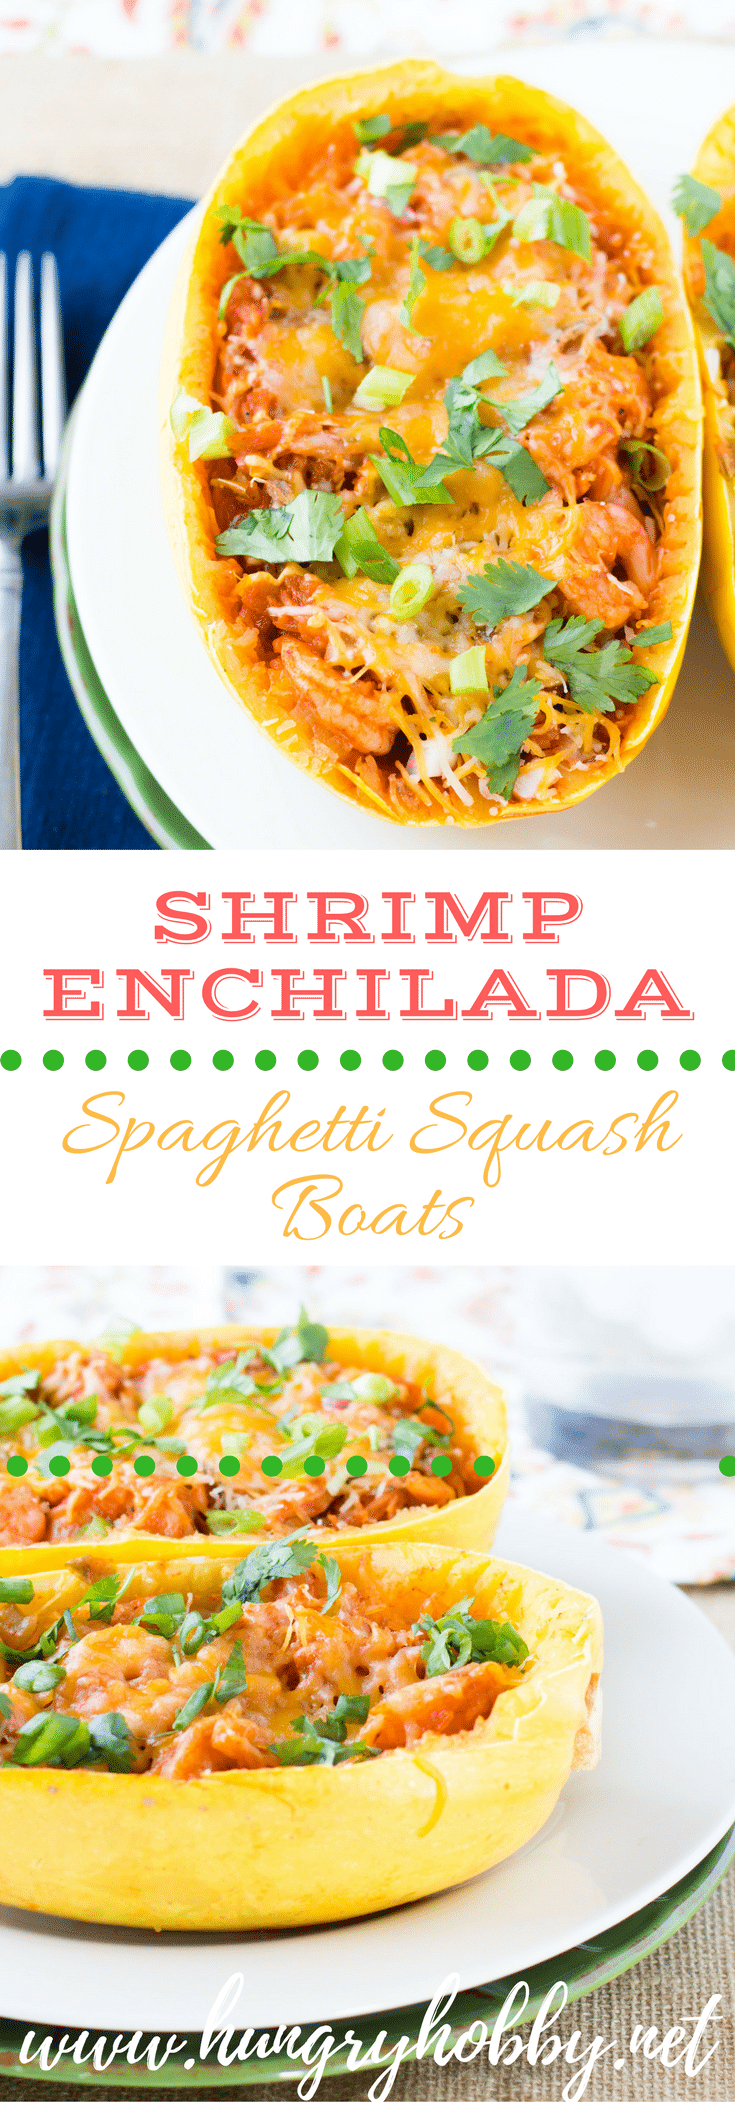 Shrimp Enchilada Spaghetti Squash Boats is a fun and extremely flavorful way to eat your veggies!  A winning dinner every time!  Read on to find out how to make this a one pot meal!